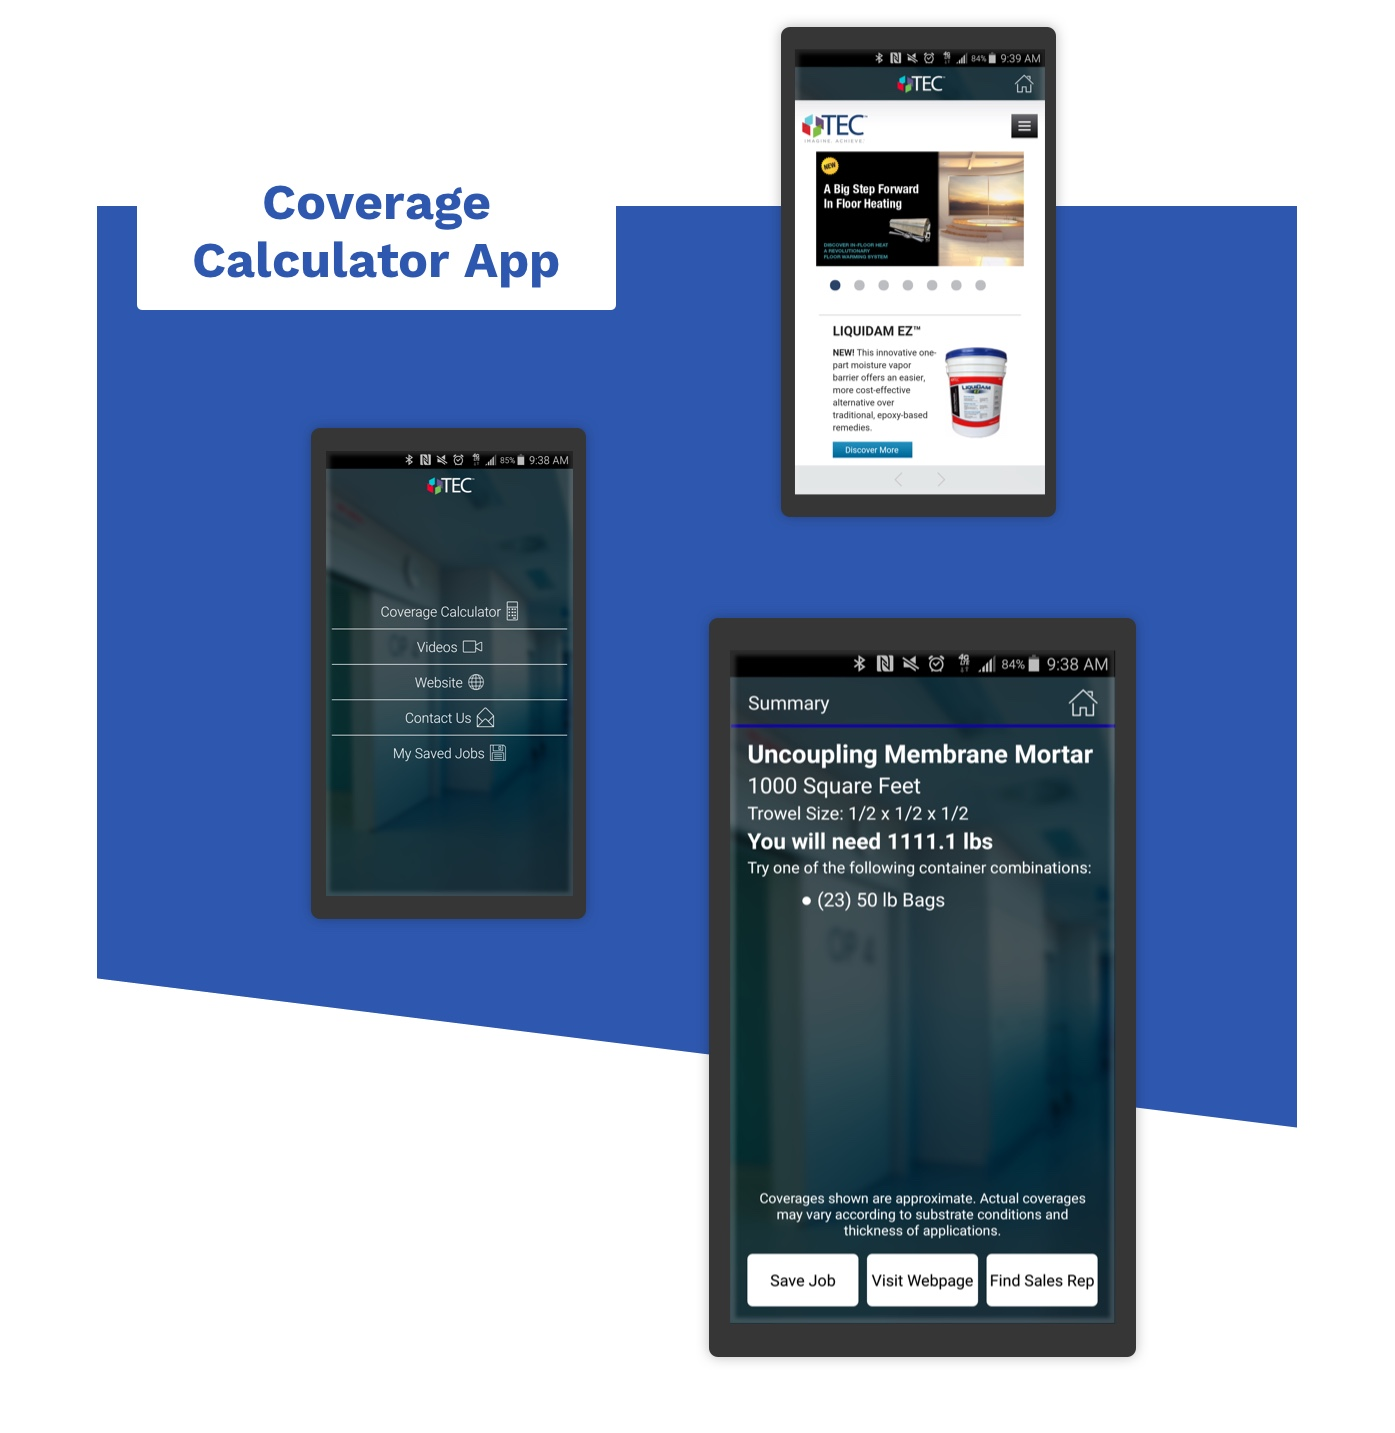 H.B. Fuller coverage calculator app.